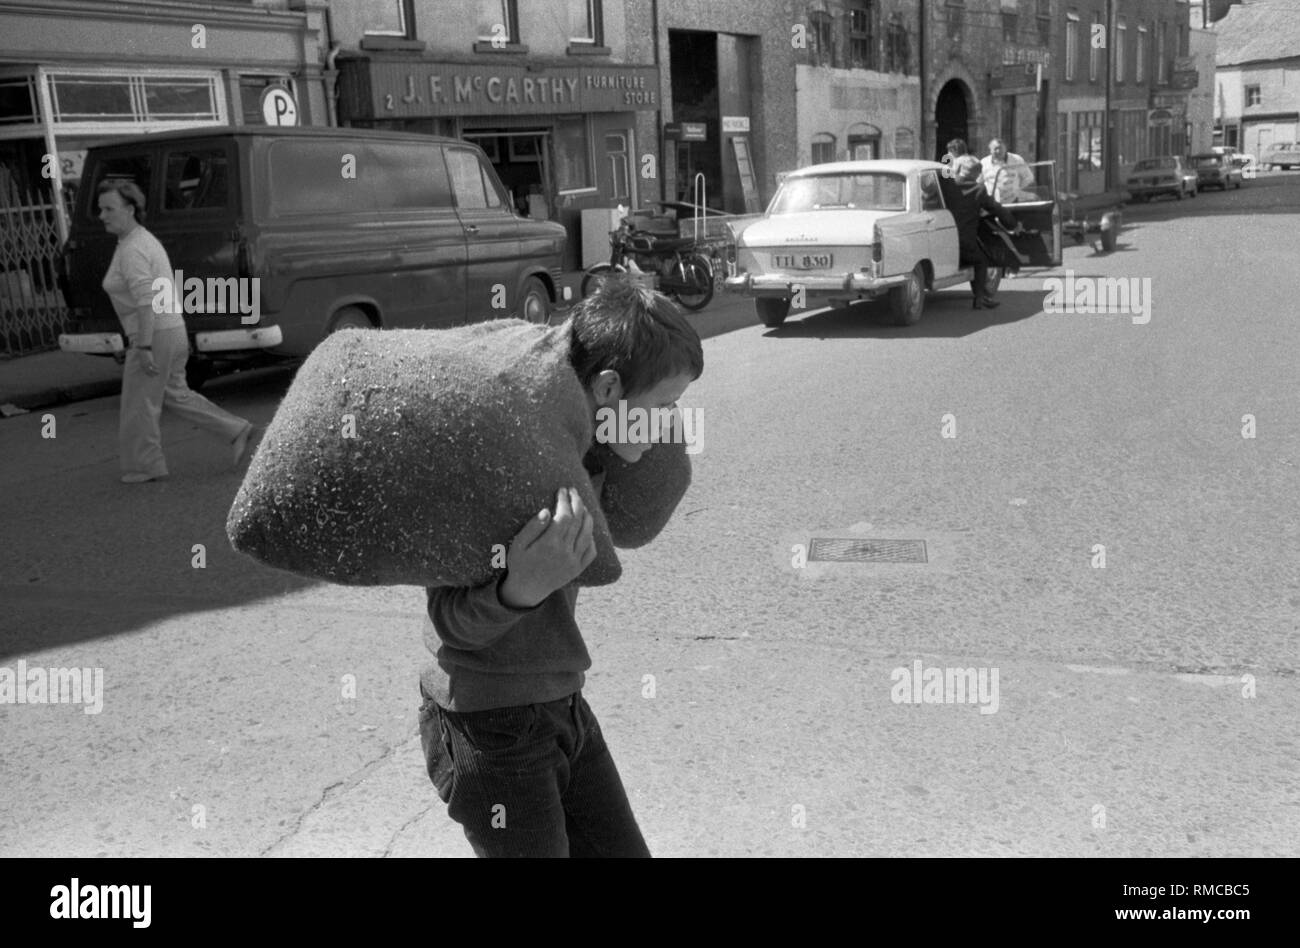 Teenage boy carrying heavy load of metal clippings off cuts taking to a scrap metal dealer. He is working for a living 1970s Irish teen Limerick, in County Limerick, Eire.  West Coast of Southern Ireland 70s HOMER SYKES - Stock Image